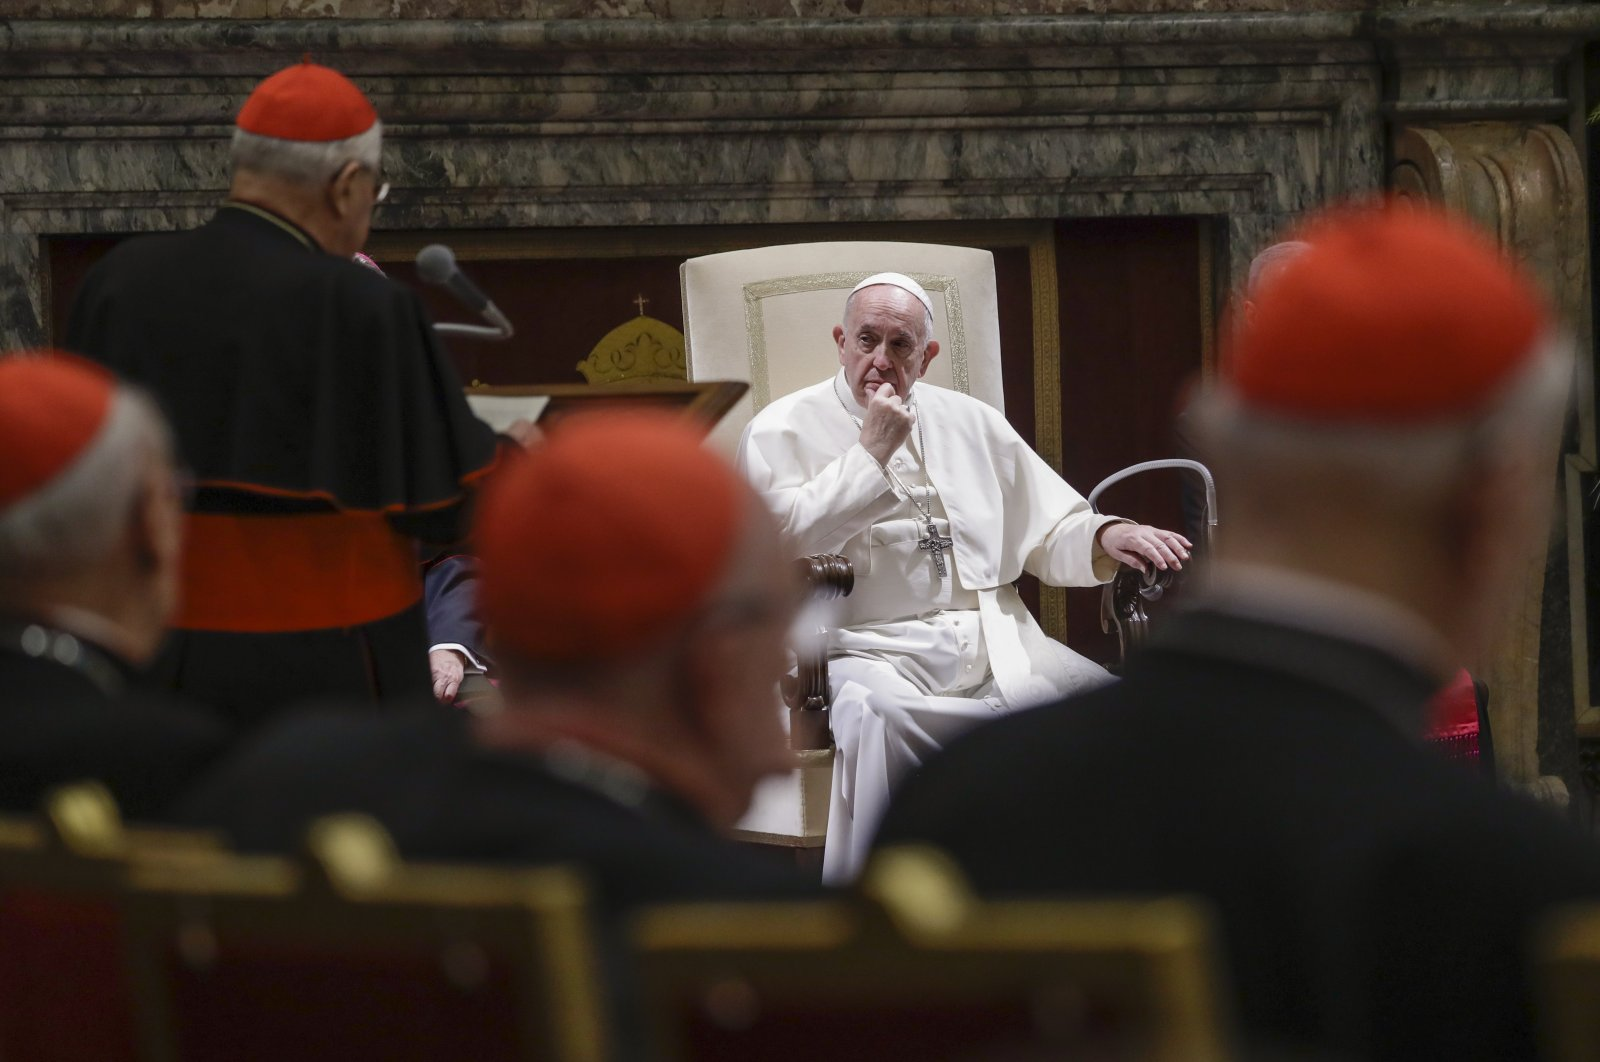 Cardinal Angelo Sodano (2nd from L) delivers a speech as Pope Francis (C) listens during the pontiff's Christmas greetings to the Roman Curia, in the Clementine Hall at the Vatican, Dec. 21, 2019. (AP Photo)